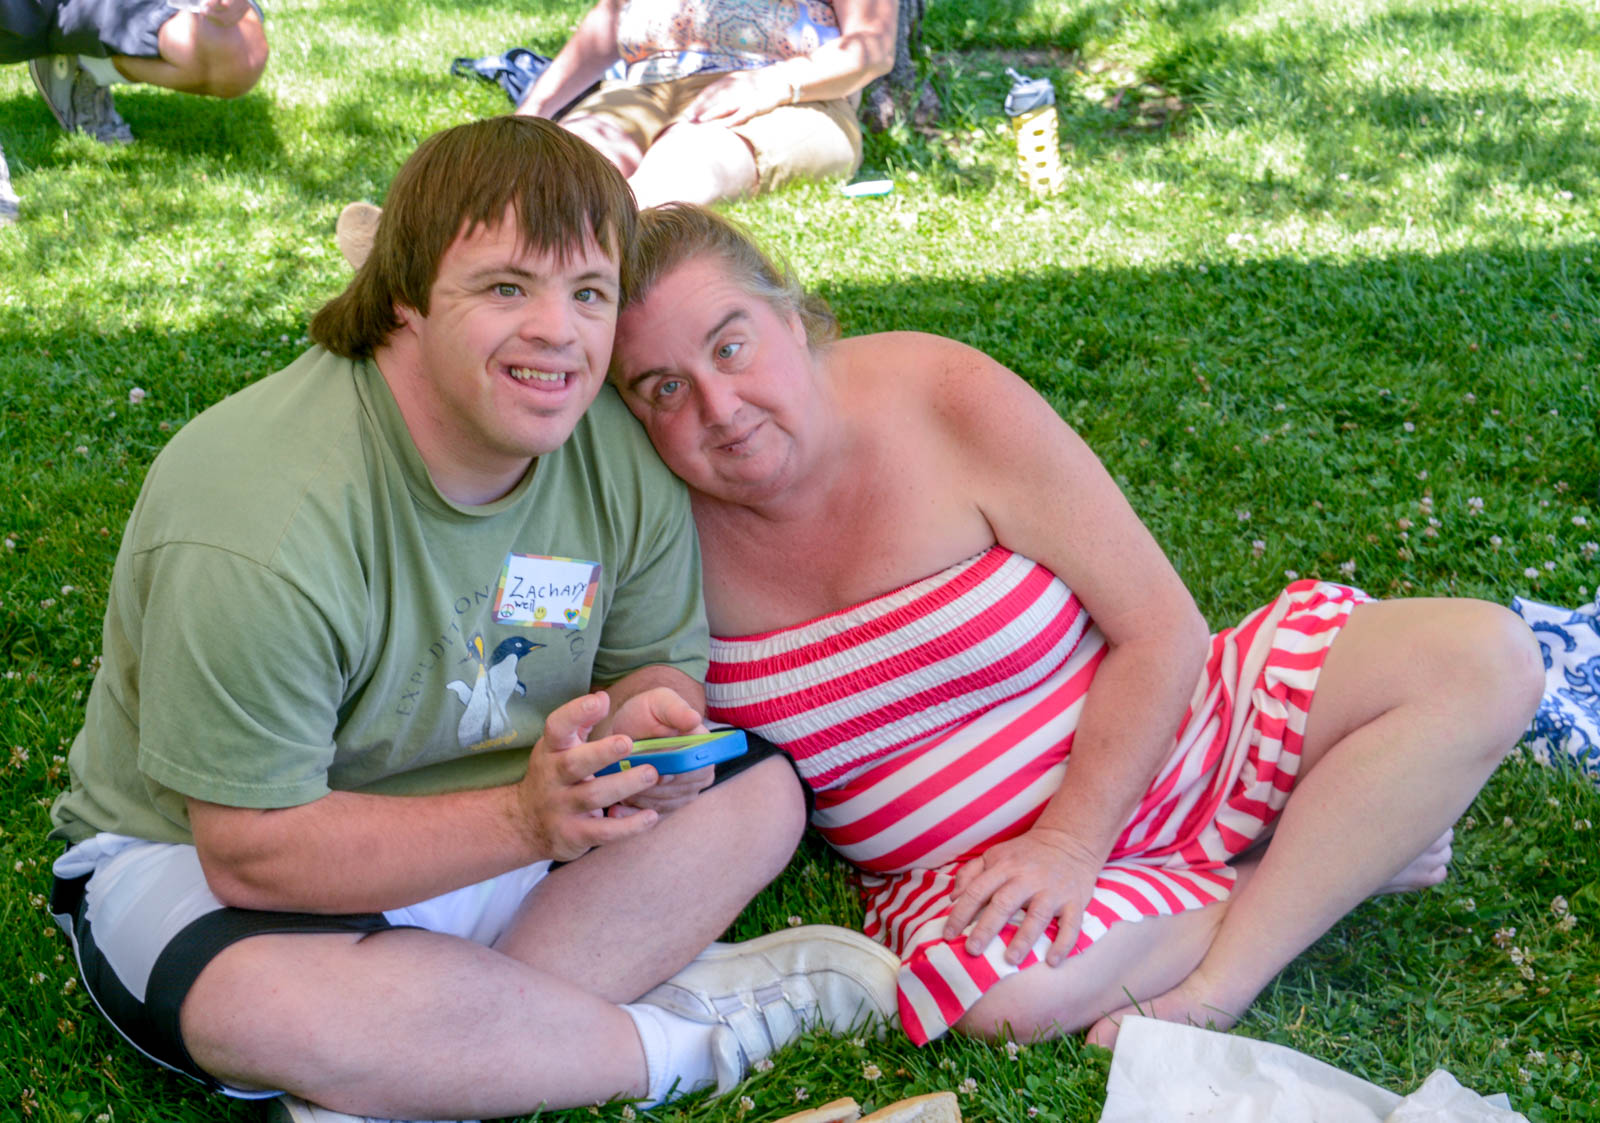 Did you know... - According to the U.S. Census Bureau, 1 in 5 people in the United States has a disability.